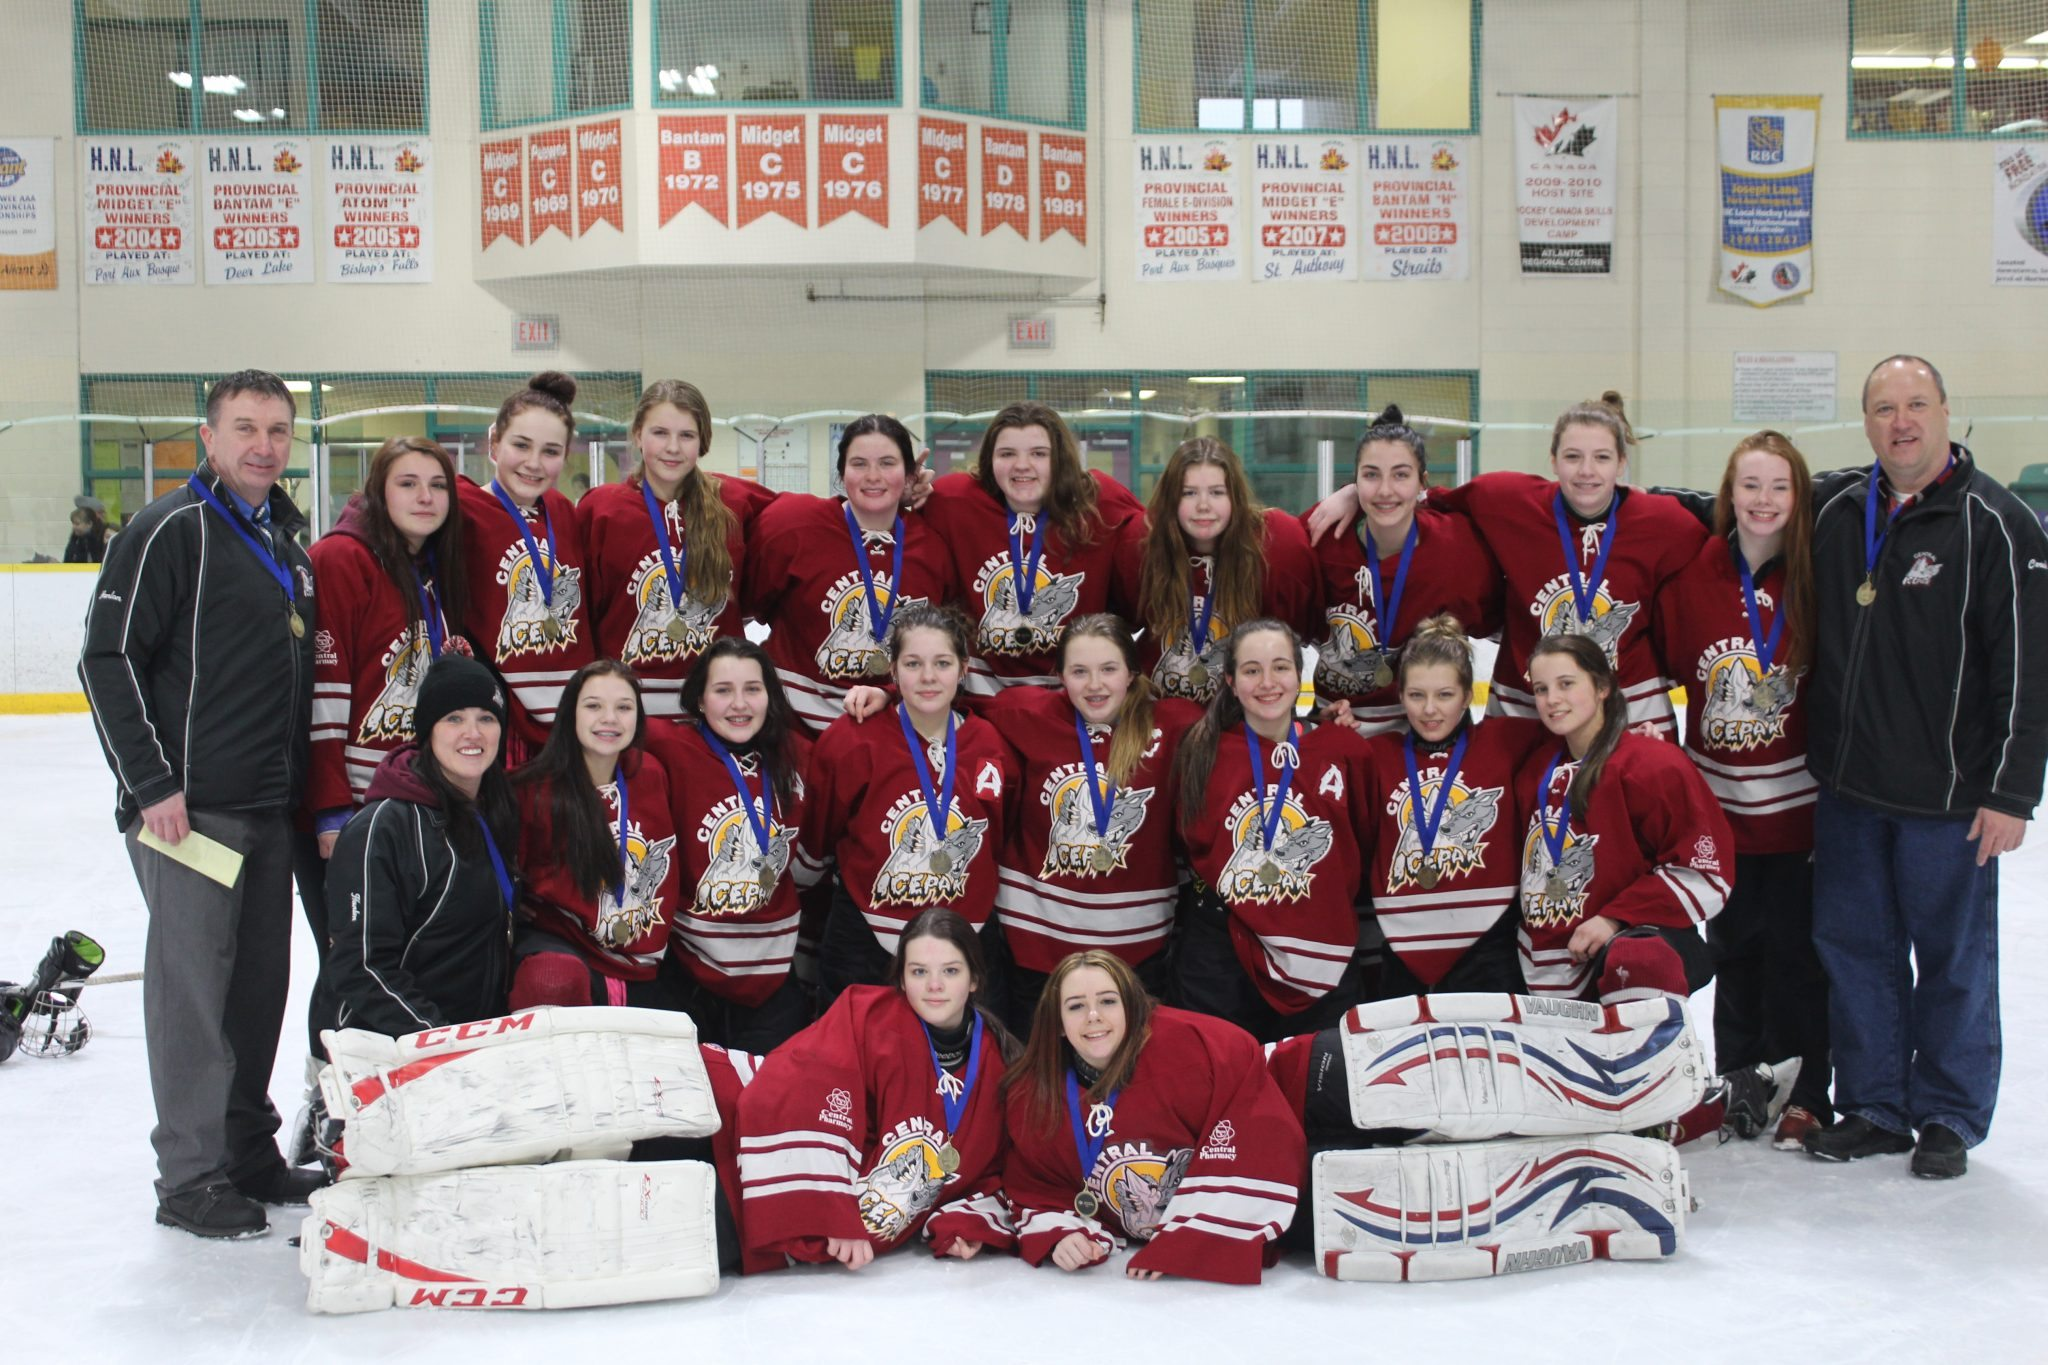 Central bantam aaa female prov champs2